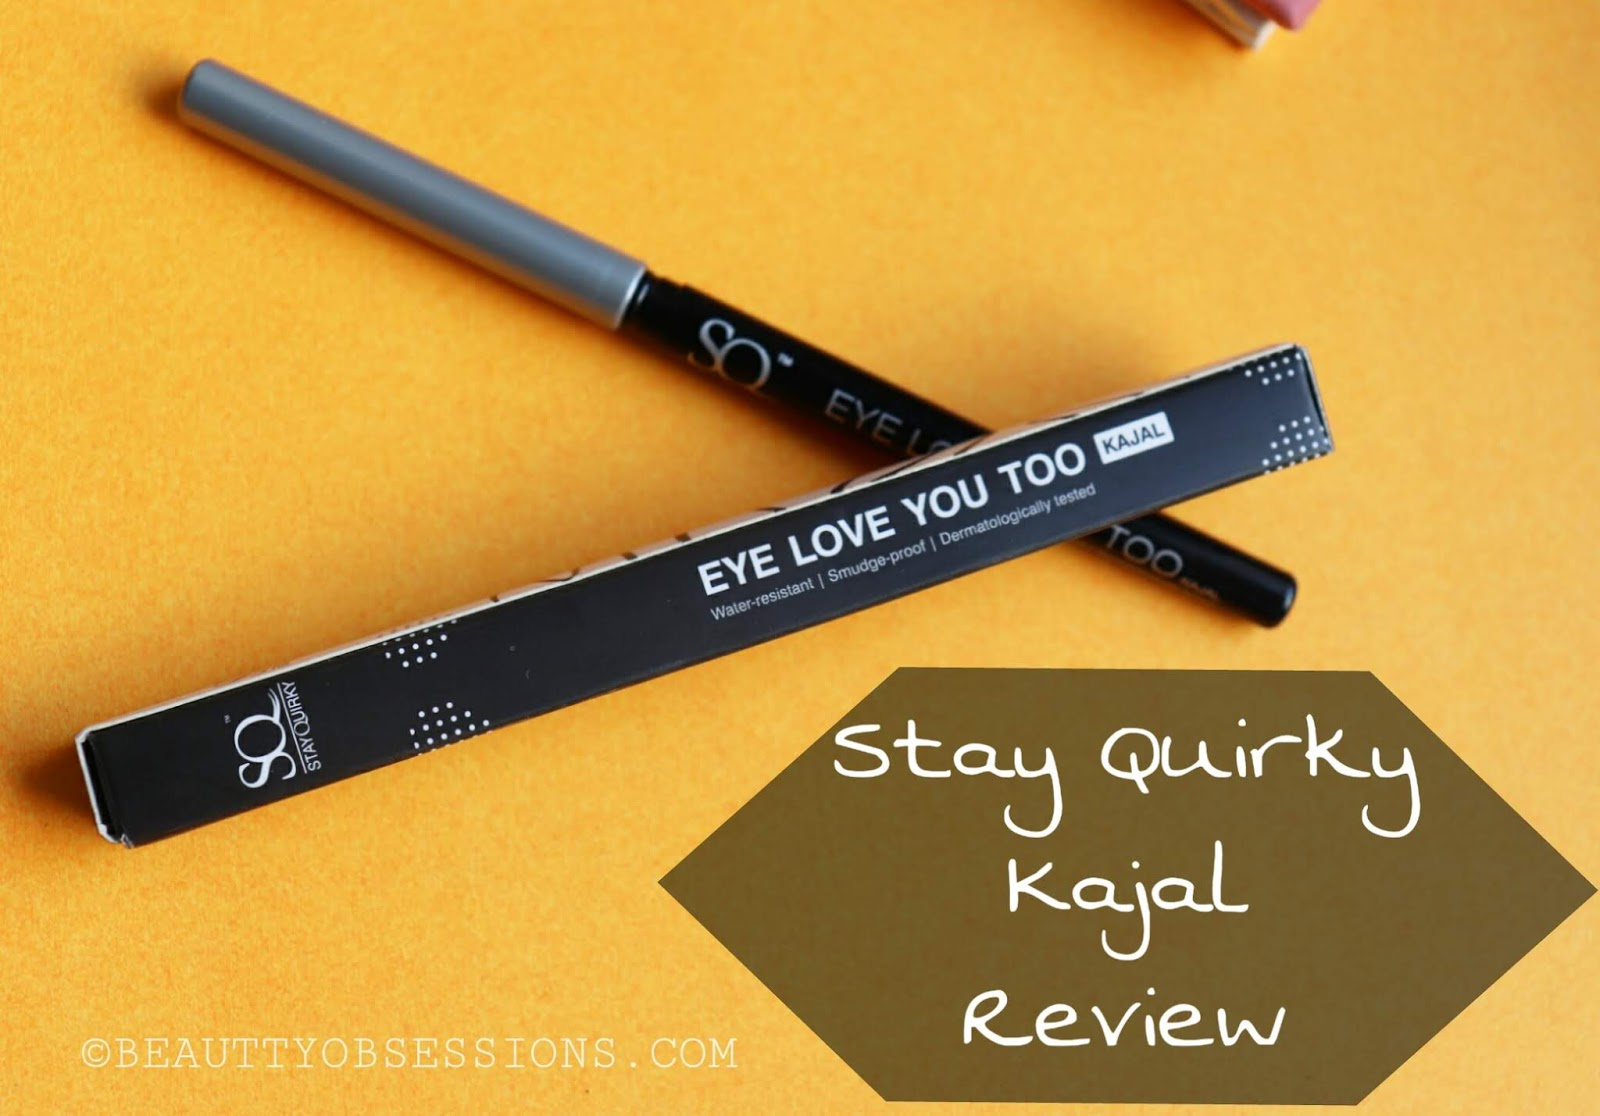 Stay Quirky Eye Love You Kajal Review - Beauty Obsessions